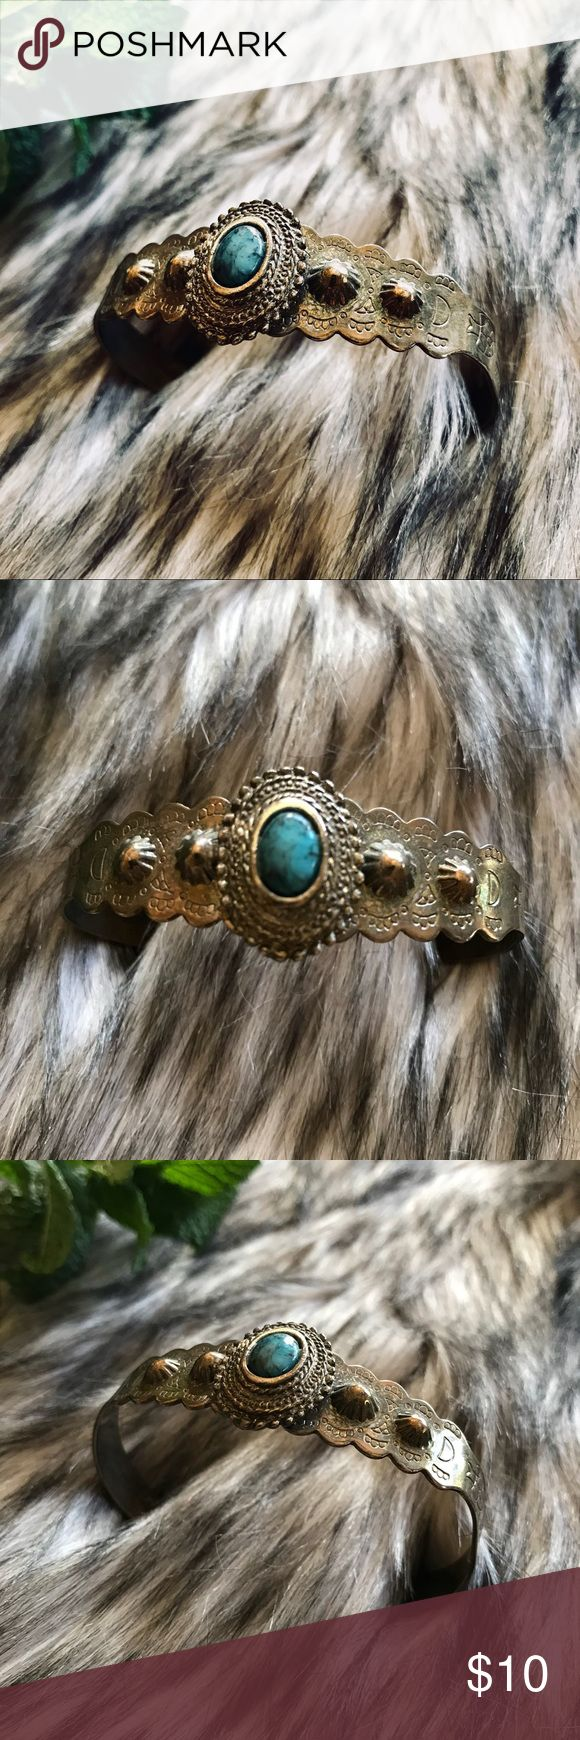 Turquoise and Silver Antique Indian Ring Burnished and mildly distressed cuff gives this bracelet a really cool antique look and feel. Never been worn and it's condition reflects that. Adjustable so you don't have to worry about fit. Simulated turquoise. Detailed etchings. If you have any questions or want more pictures please send me a message and I'll get back to you as swiftly as I can.  Also if you want check out the rest of my closet. 10% off if you bundle 3 or more items! Jewelry…